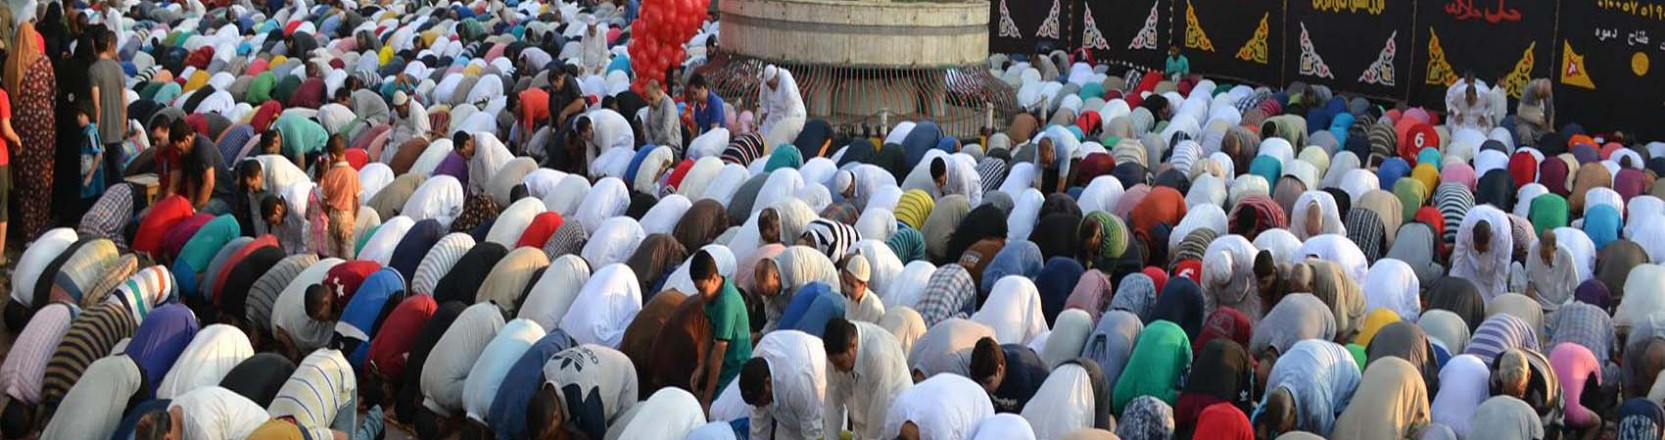 The Eid prayer